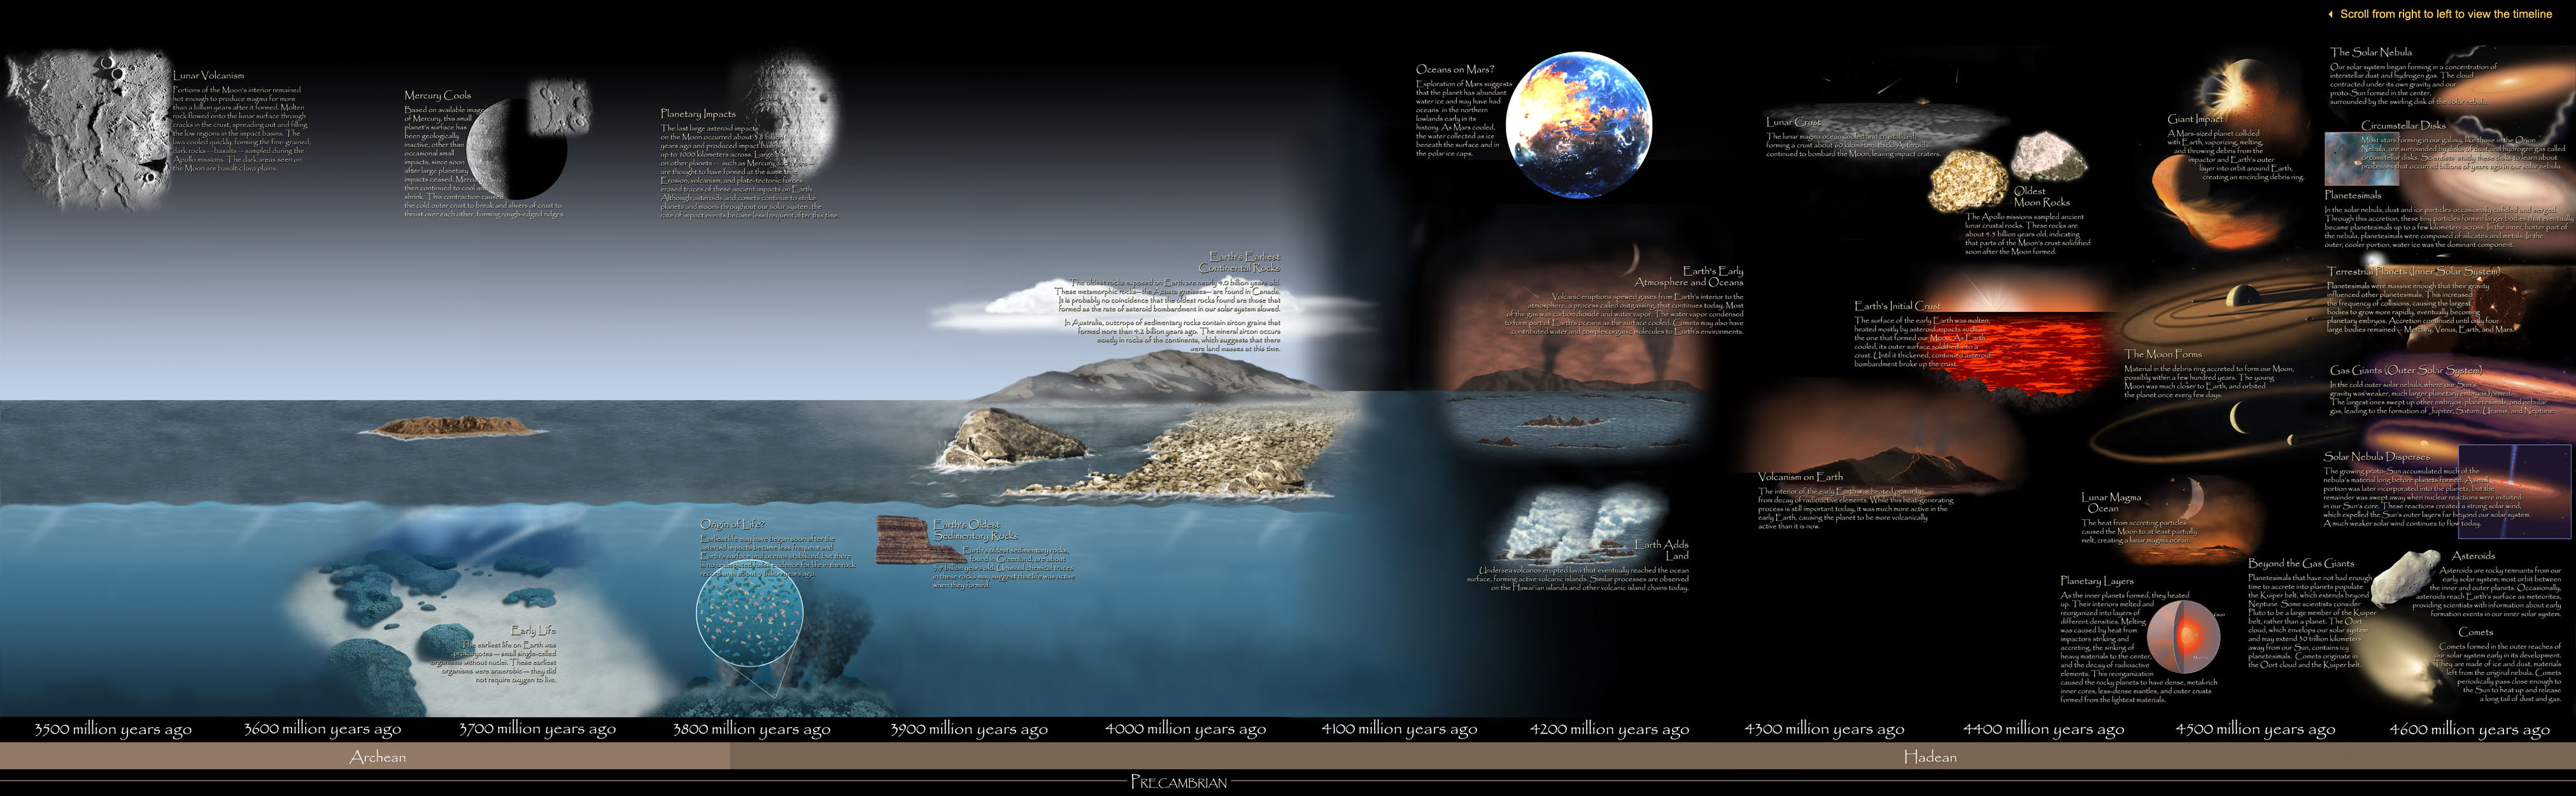 the wall of time evolution of the solar system 4600 million years ago 3500 million years ago